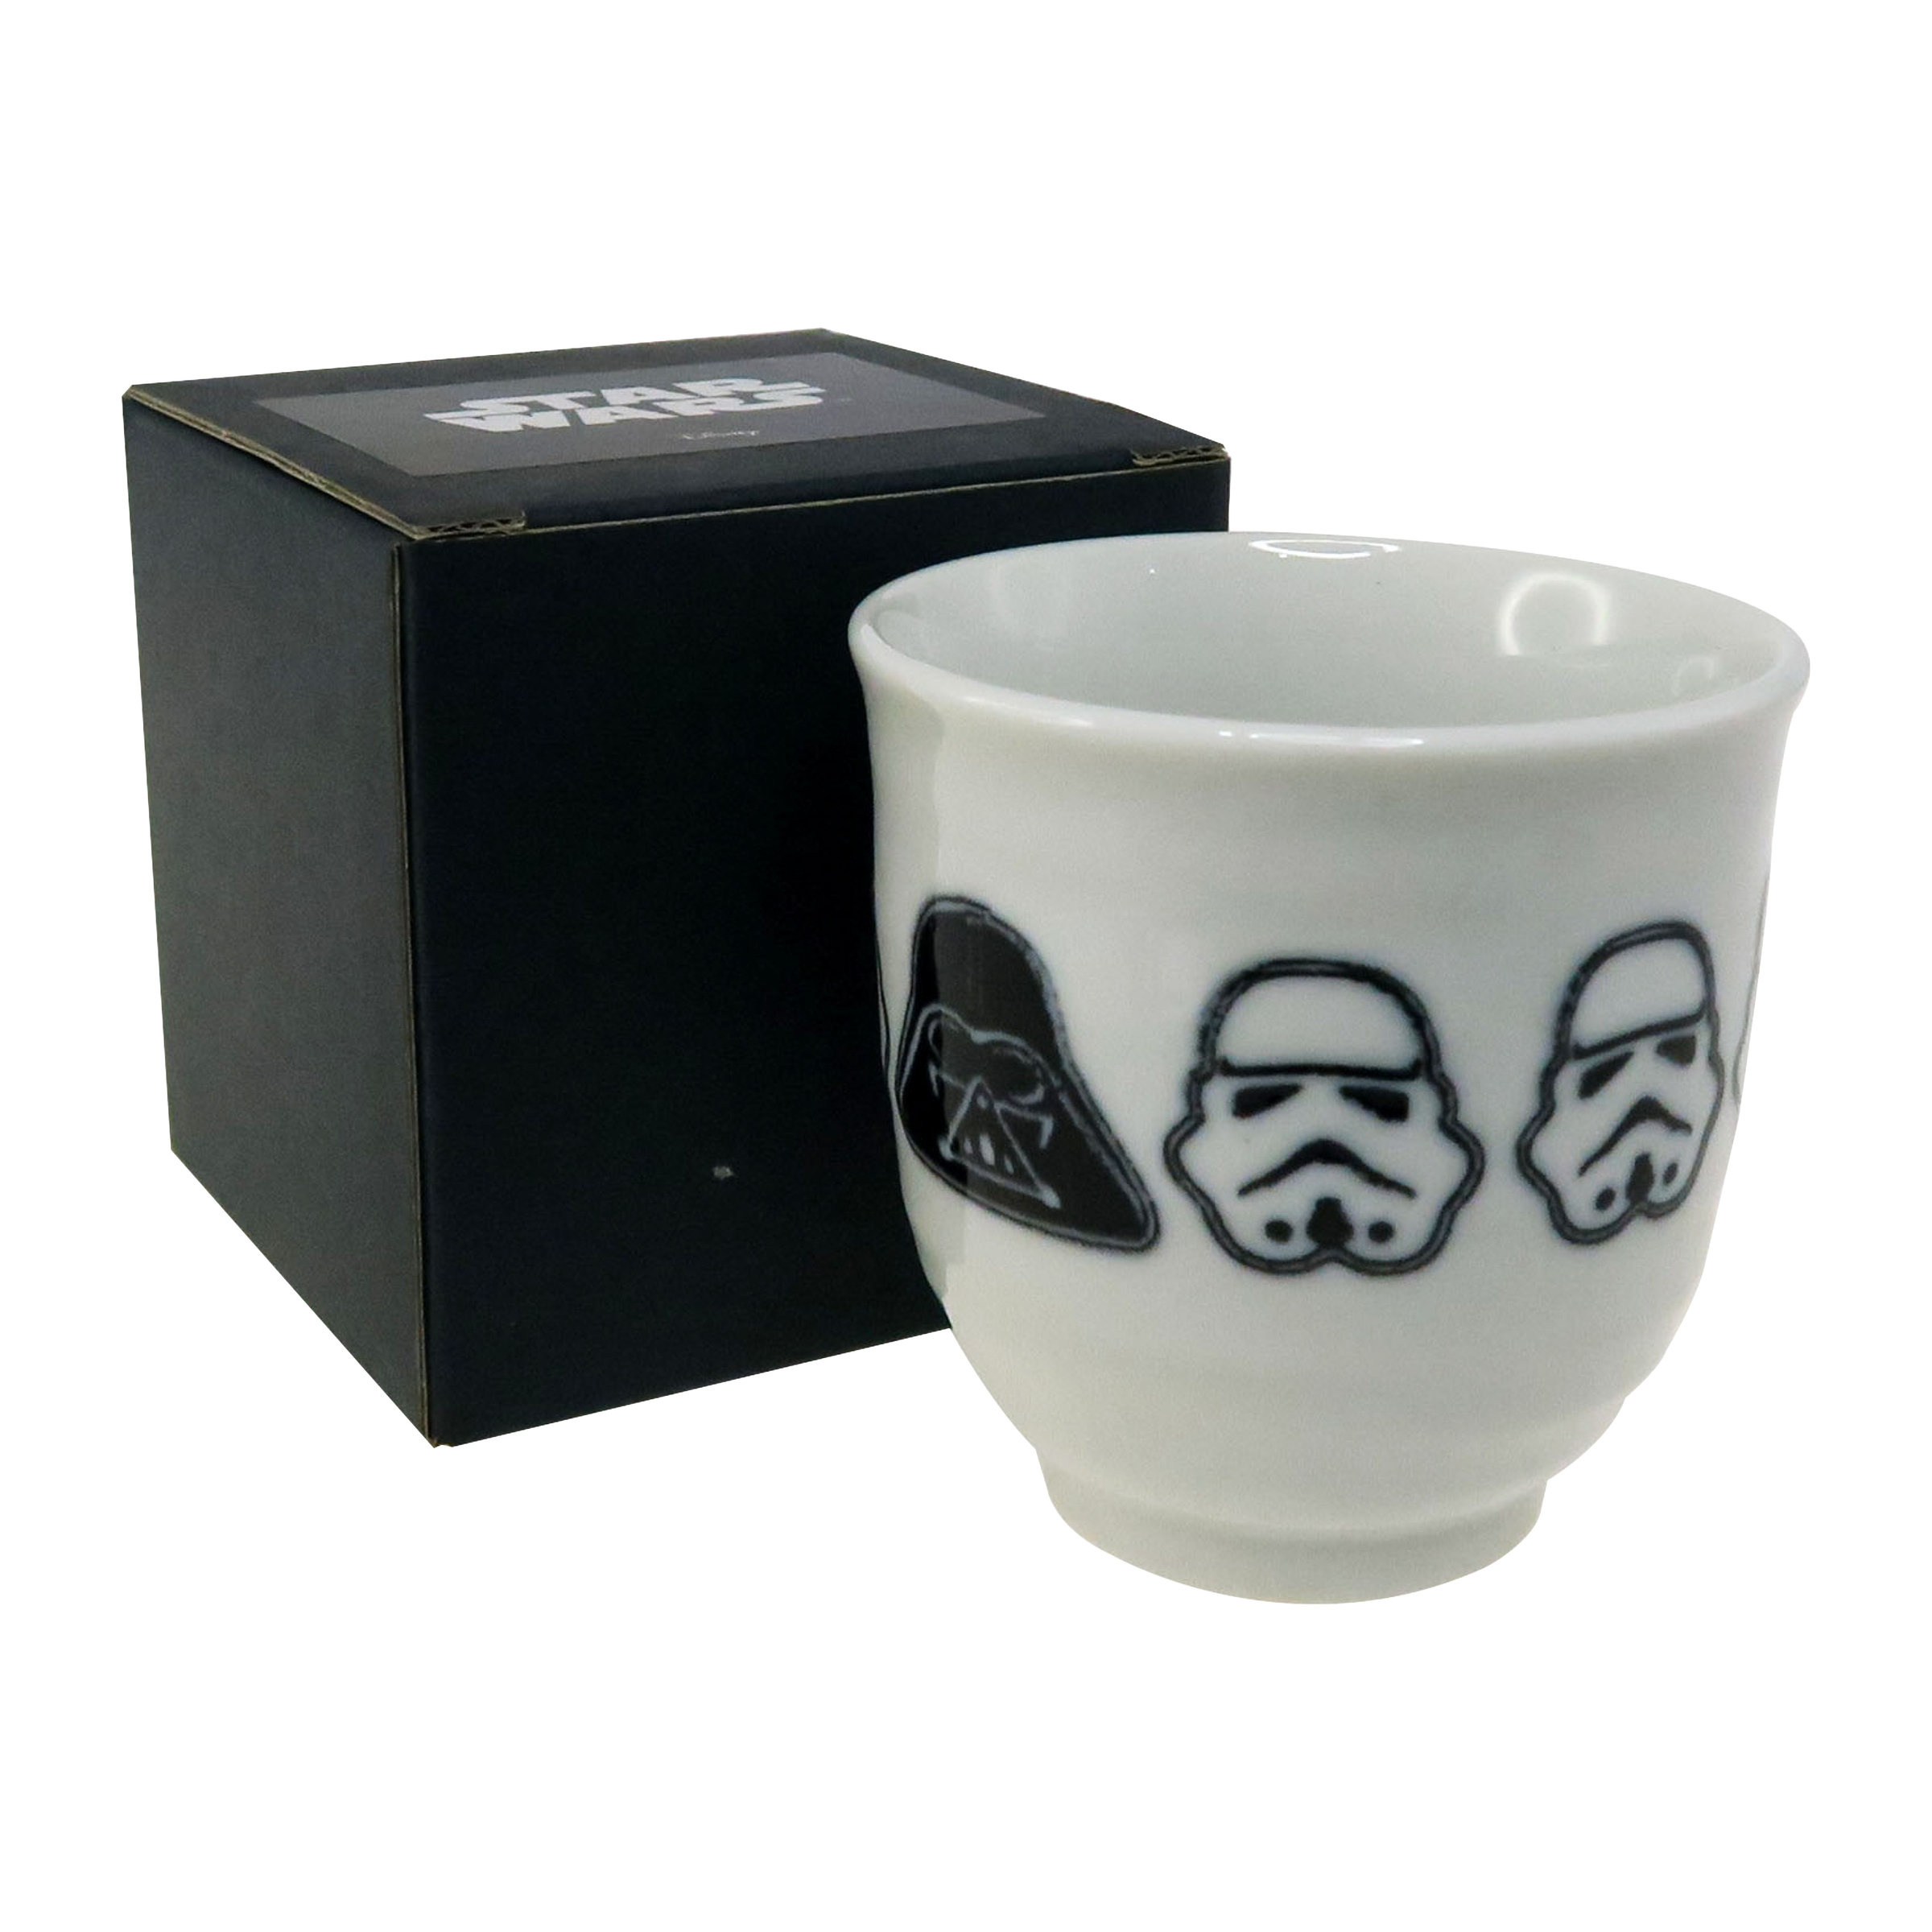 star-wars-cup-gift-box-set-storm-trooper-3.jpg